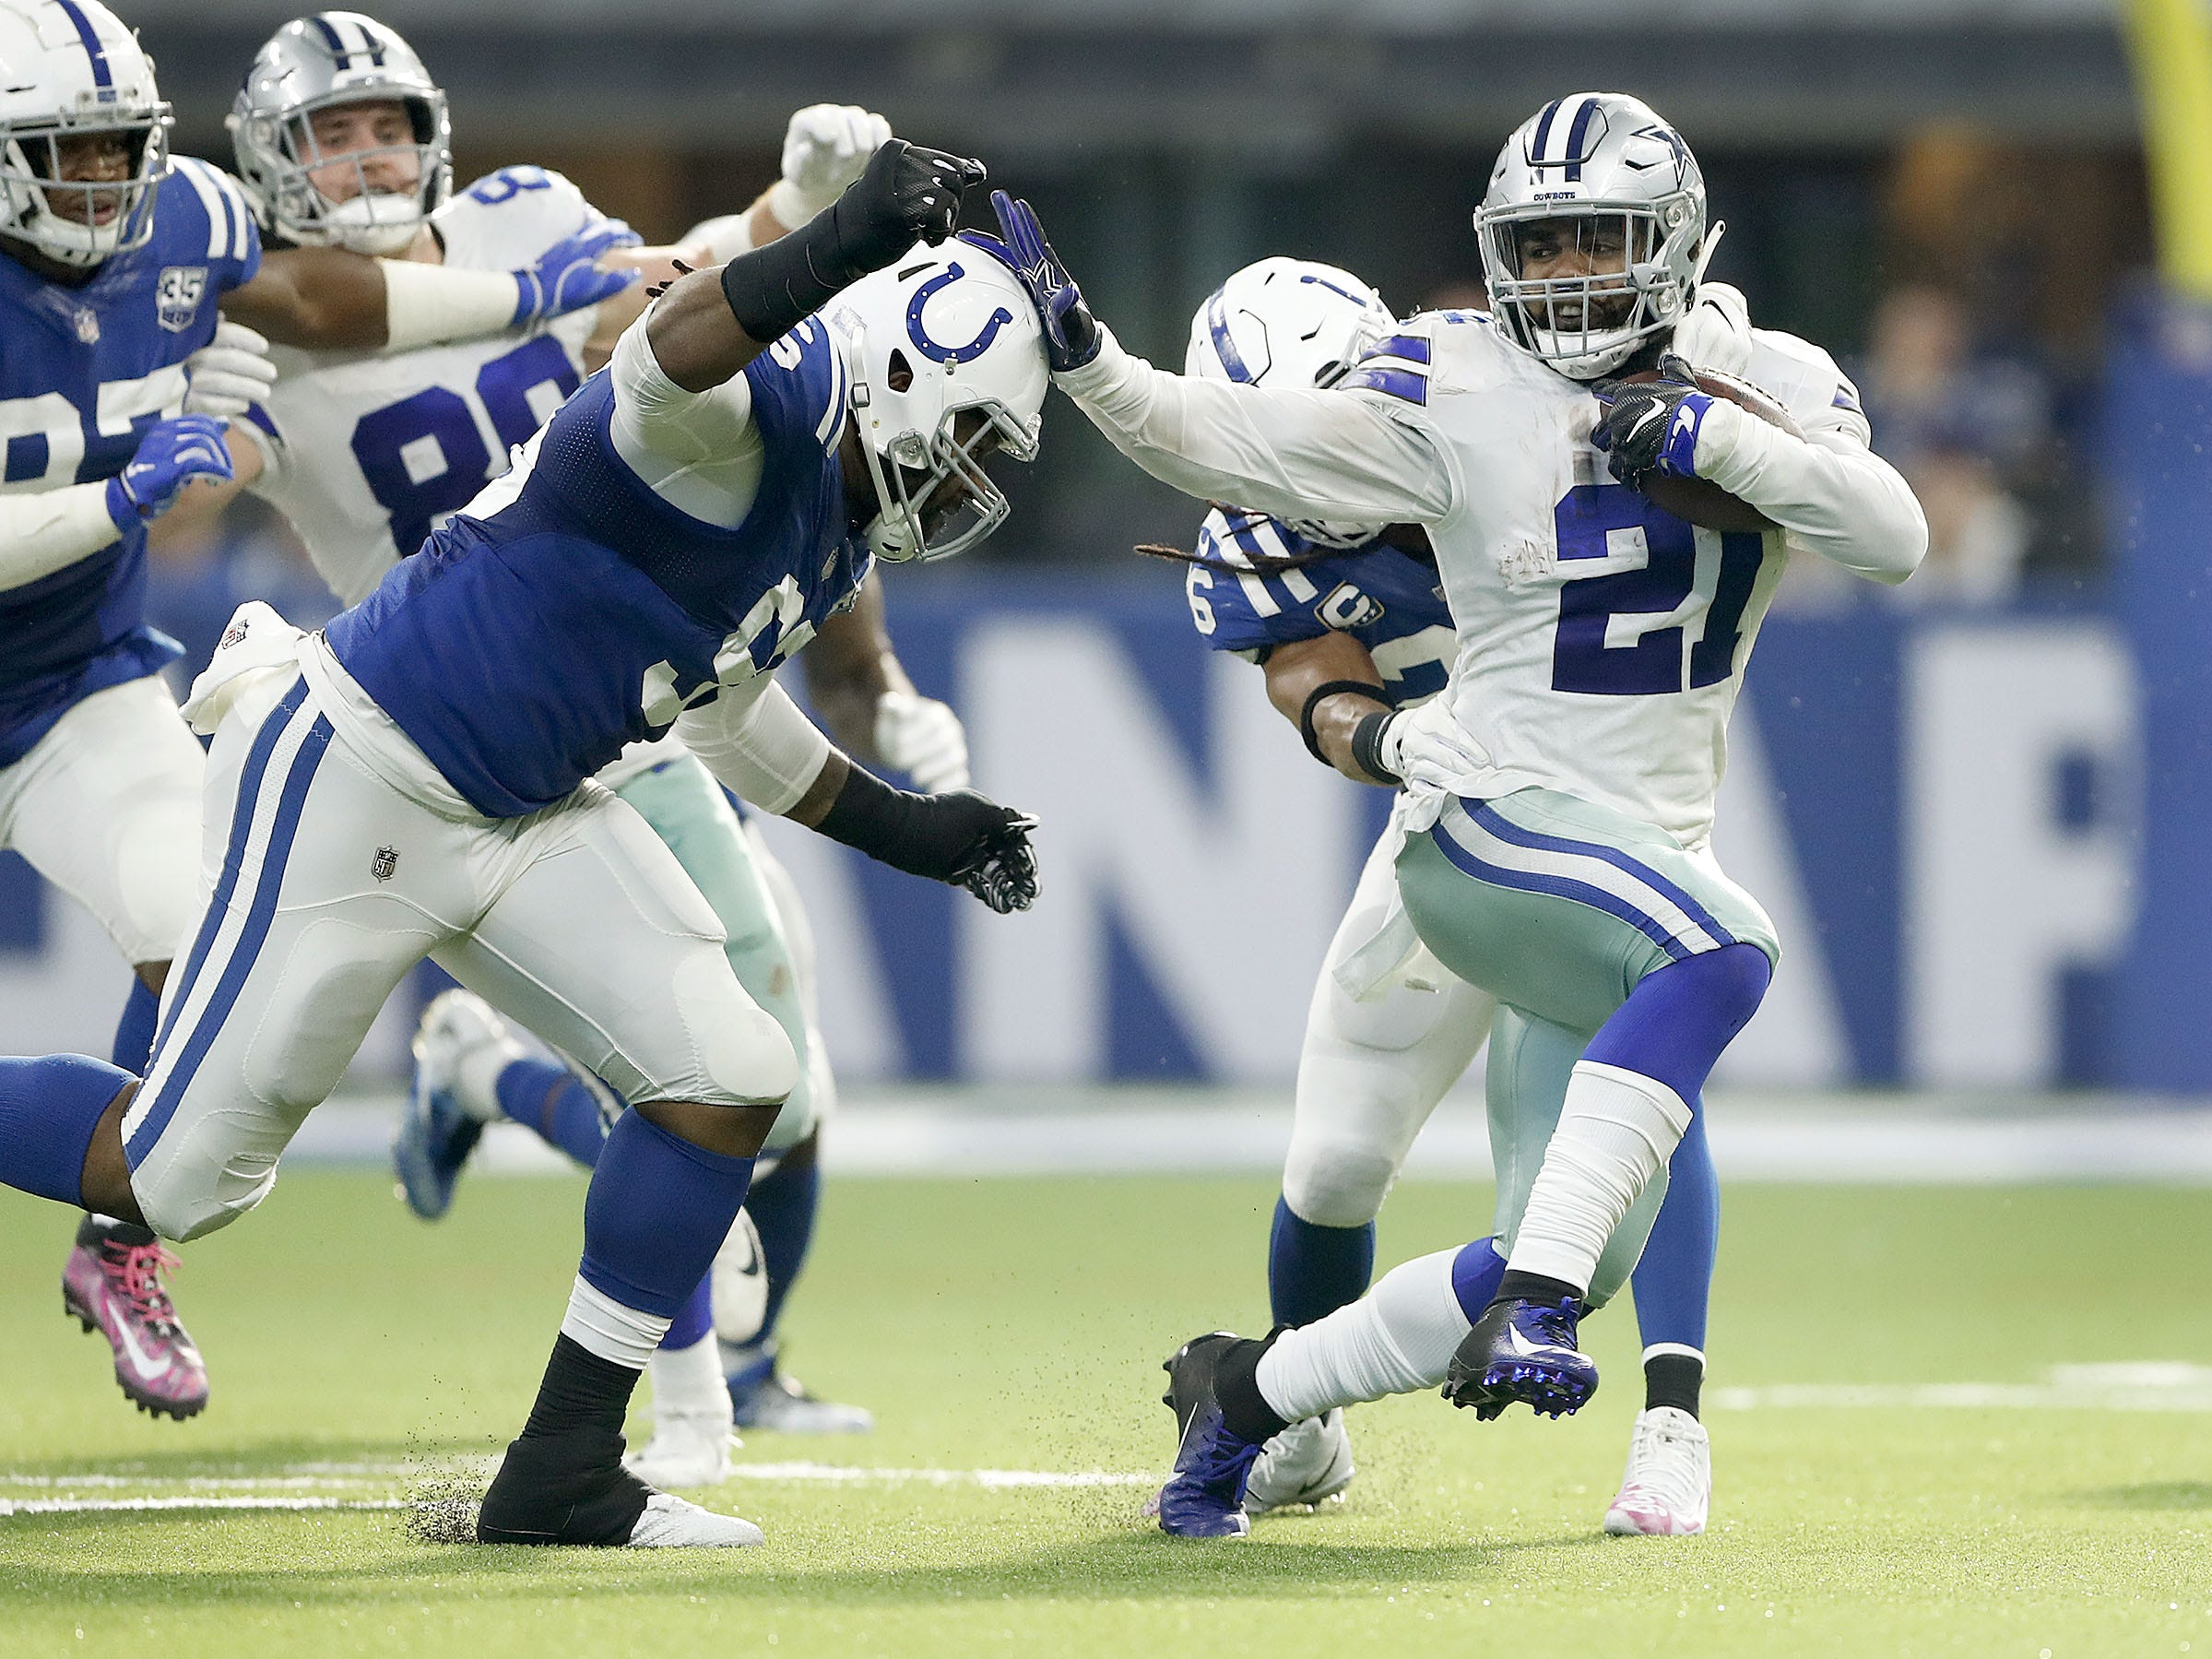 Indianapolis Colts defensive tackle Denico Autry (96) reaches out to tackle Dallas Cowboys running back Ezekiel Elliott (21 in the first half of their game at Lucas Oil Stadium on Sunday, Dec. 16, 2018.